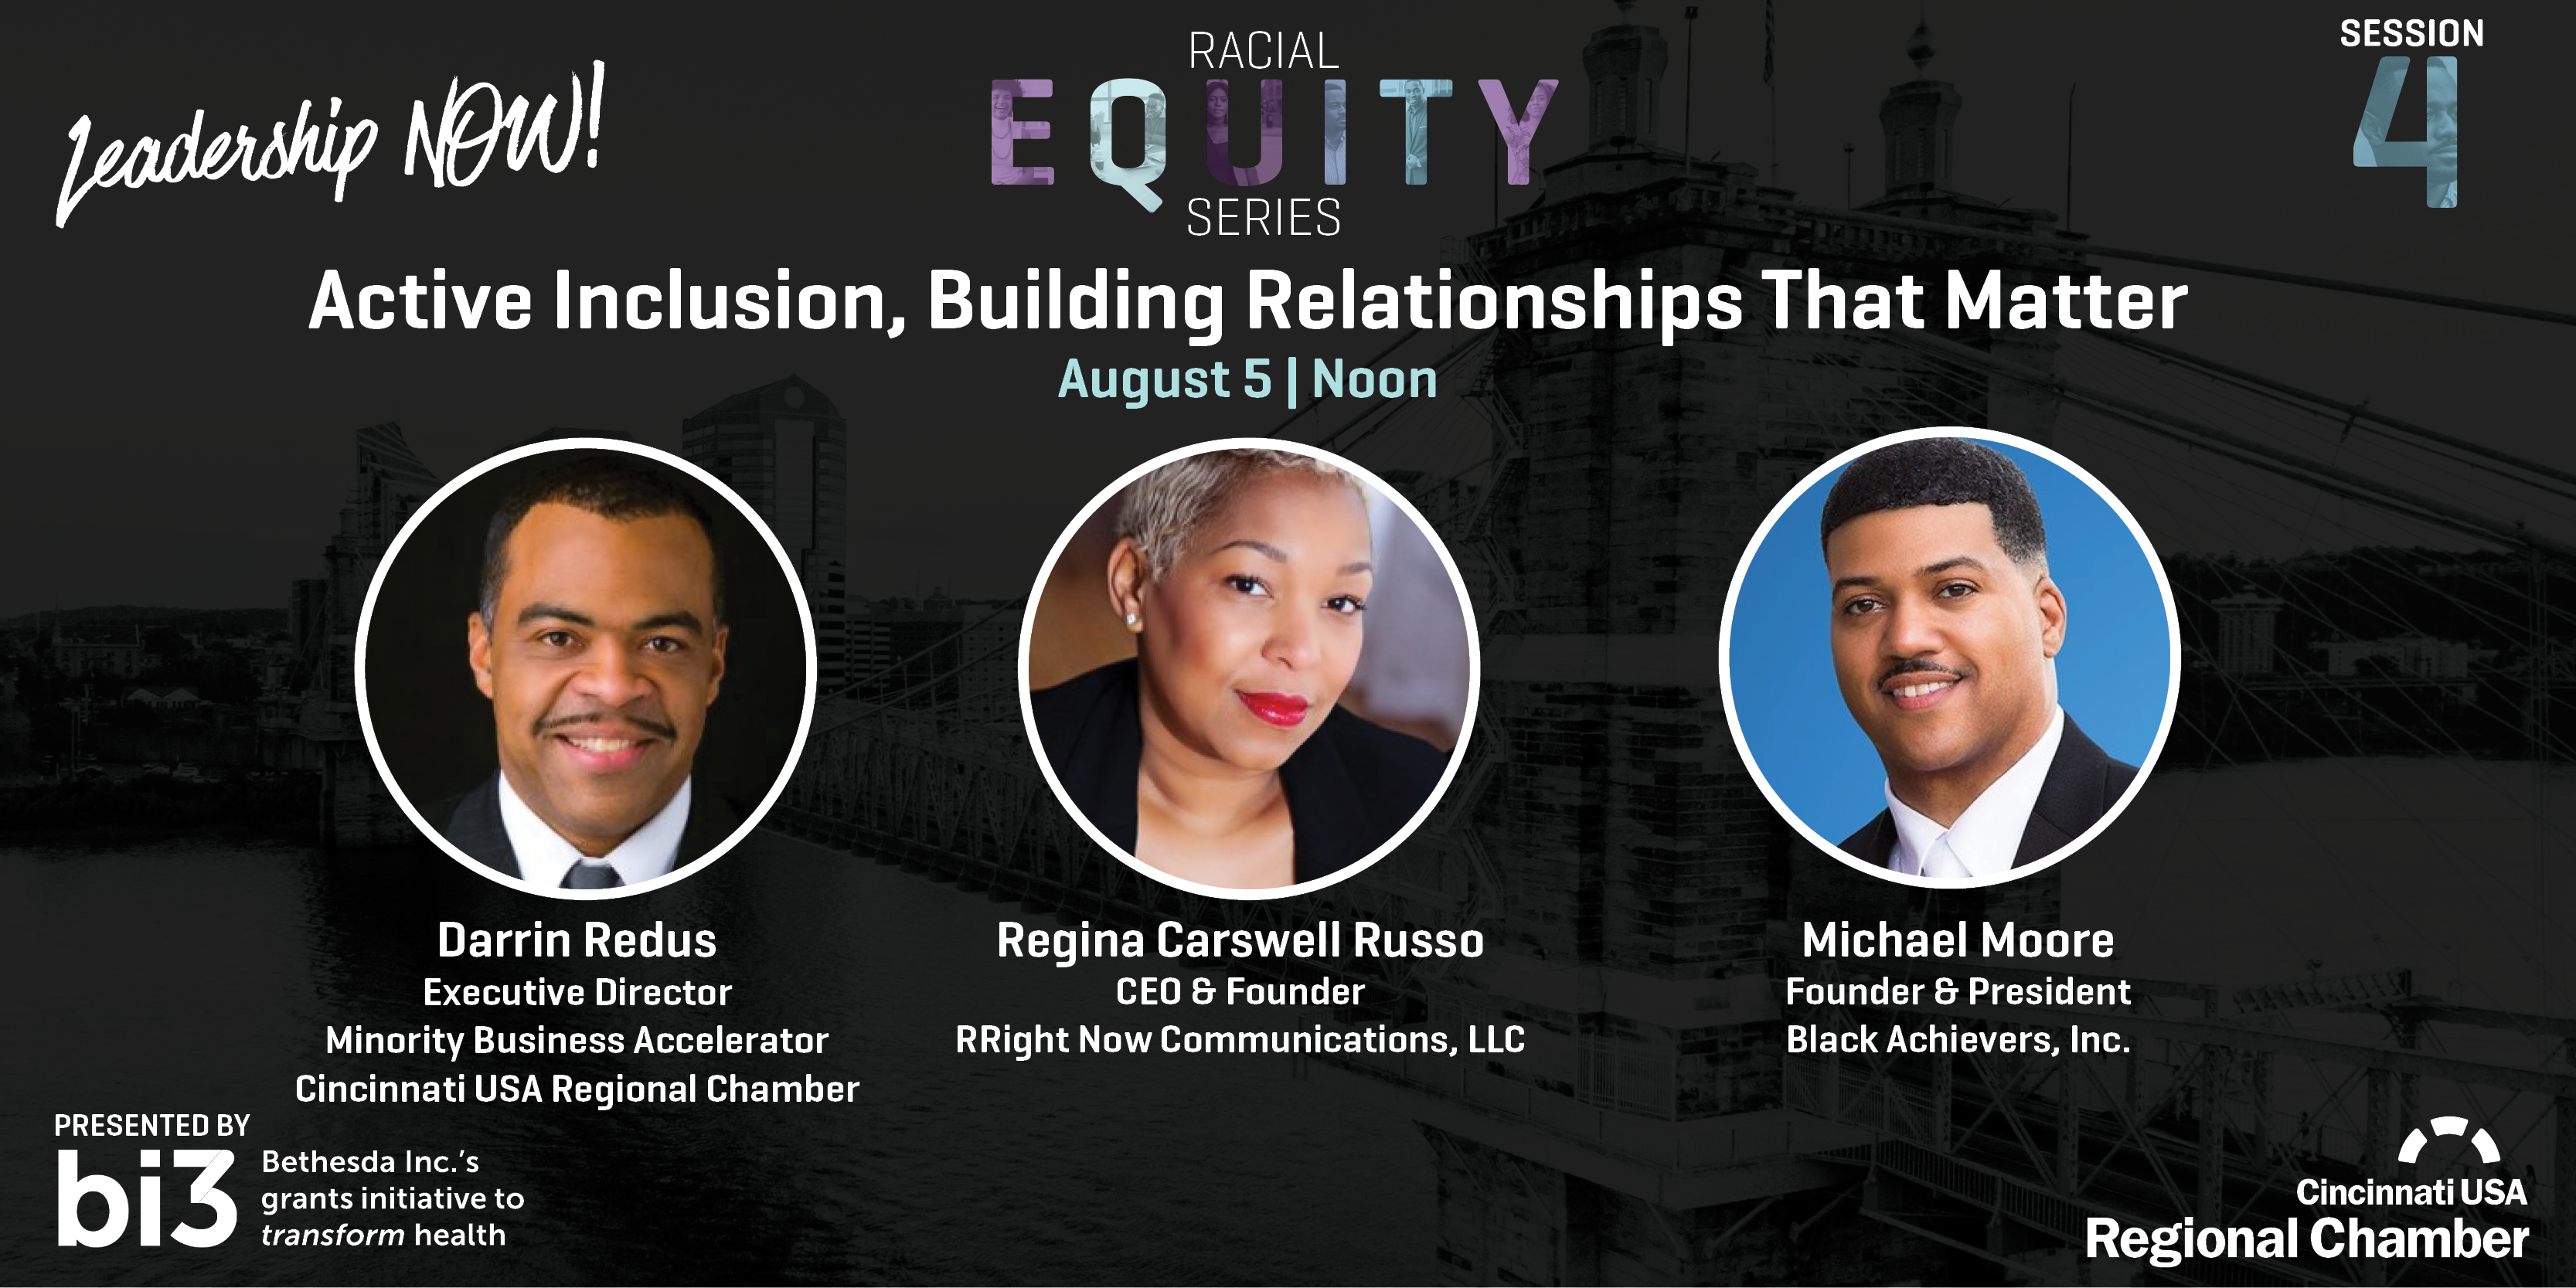 Racial Equity Series Session 4